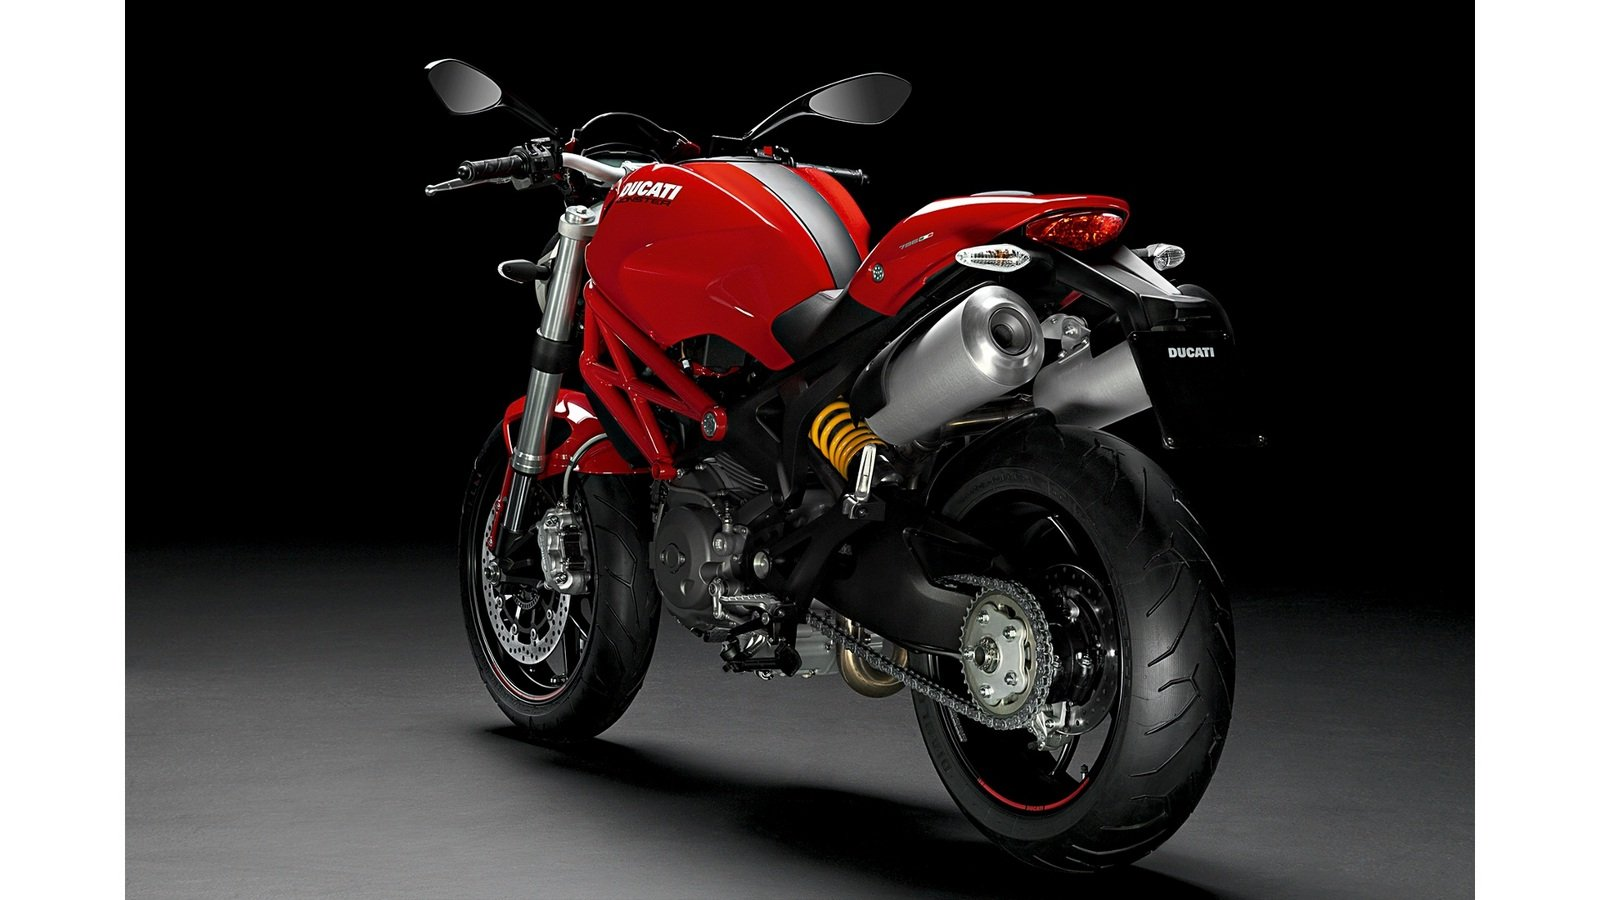 2013 ducati monster 796 20th anniversary picture 482322 motorcycle review top speed. Black Bedroom Furniture Sets. Home Design Ideas